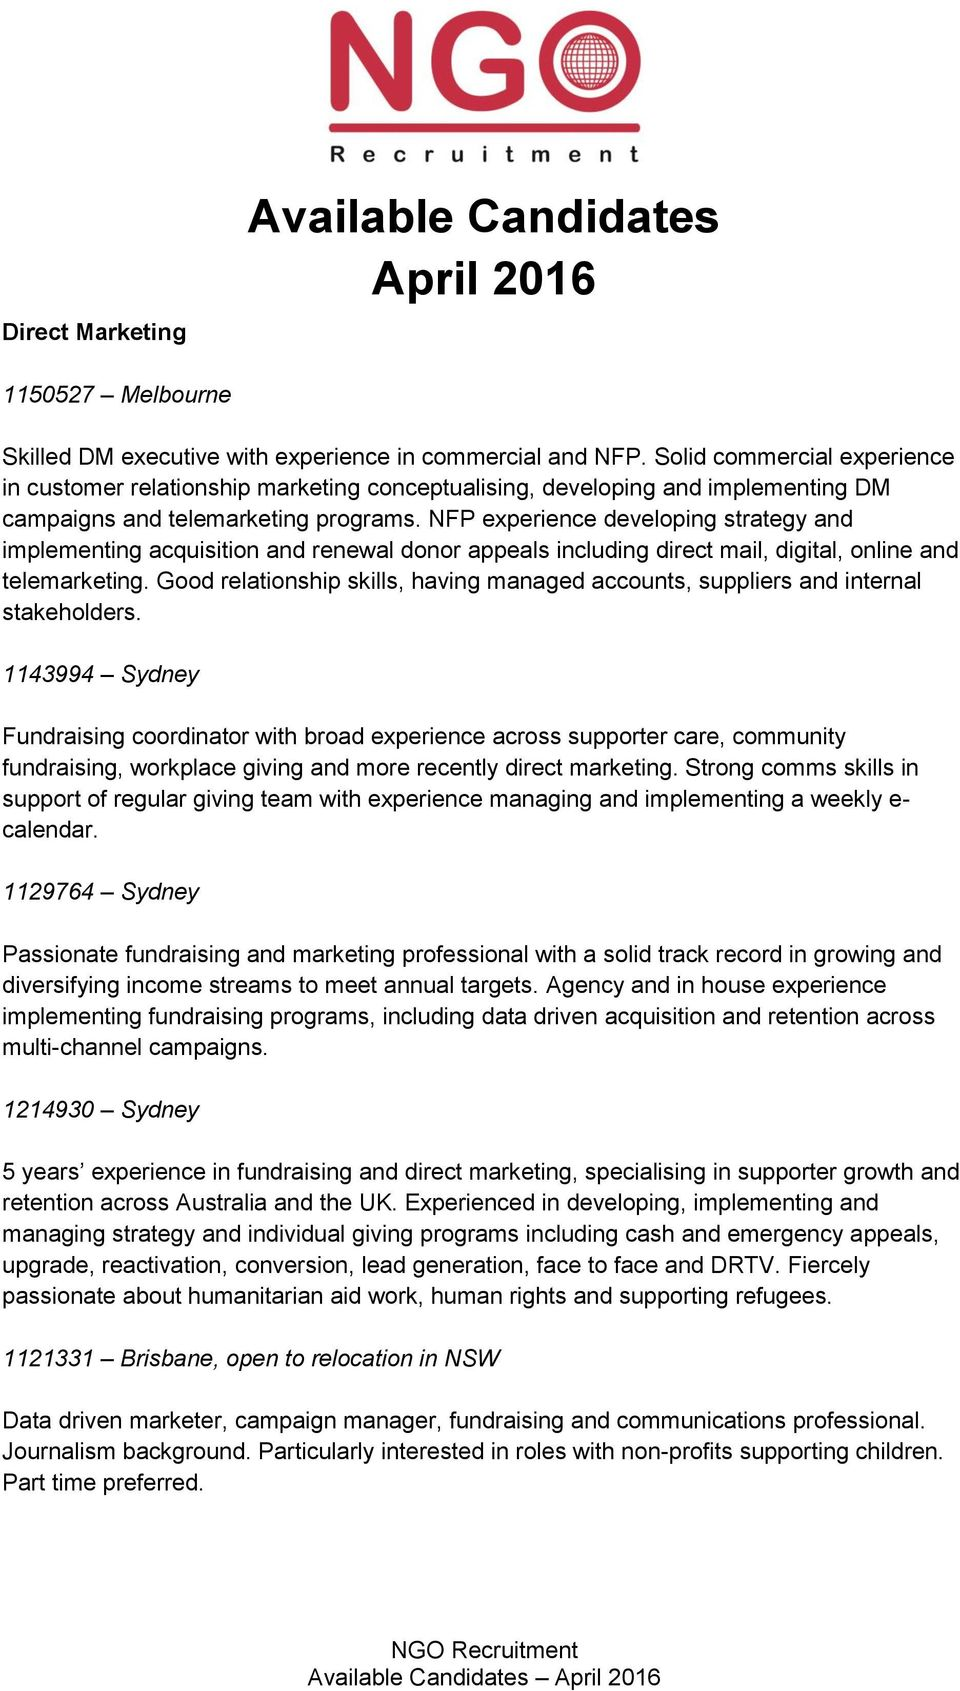 NFP experience developing strategy and implementing acquisition and renewal donor appeals including direct mail, digital, online and telemarketing.